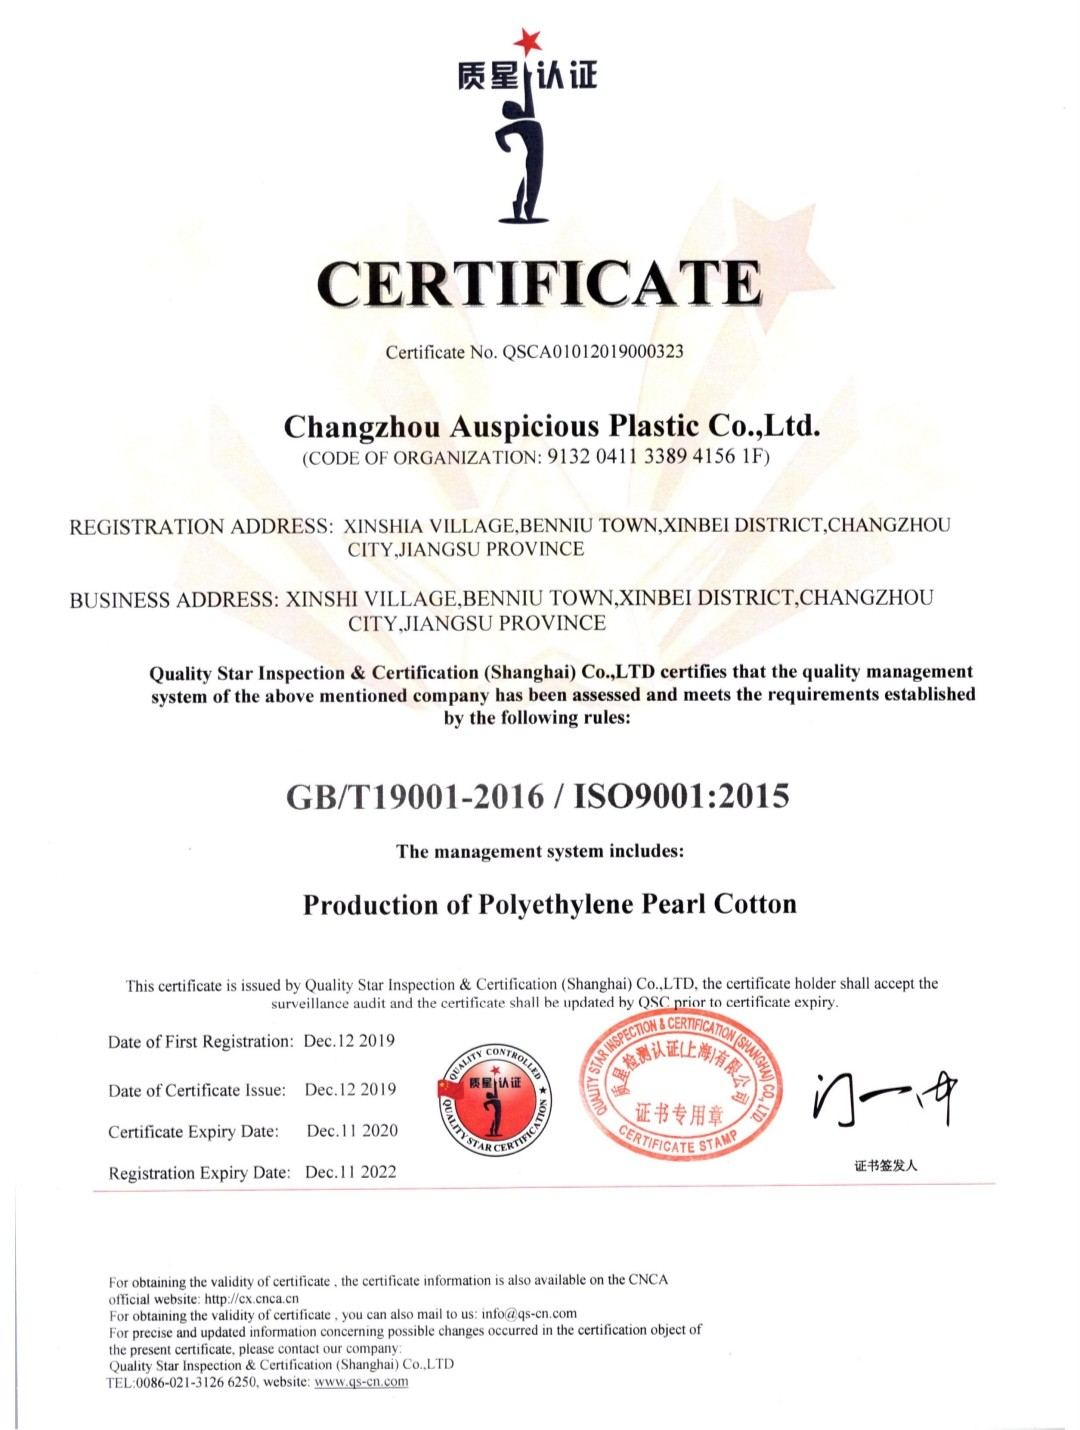 الصين Changzhou Auspicious Plastic Co., Ltd. الشهادات